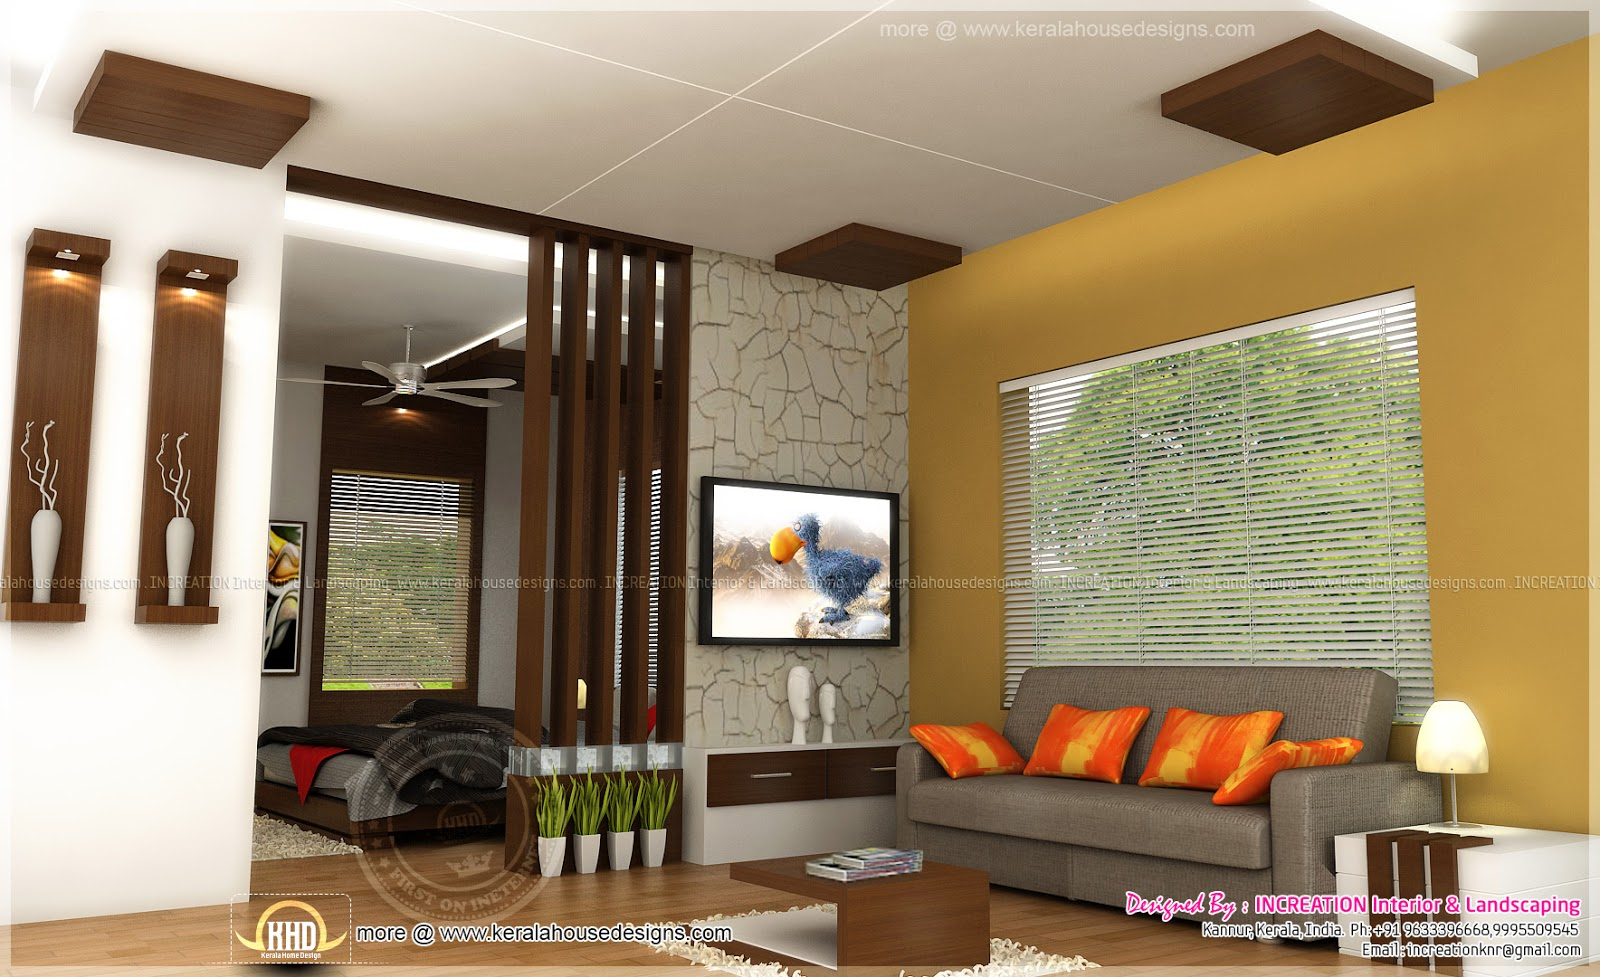 Interior designs from kannur kerala home kerala plans for Interior design of room